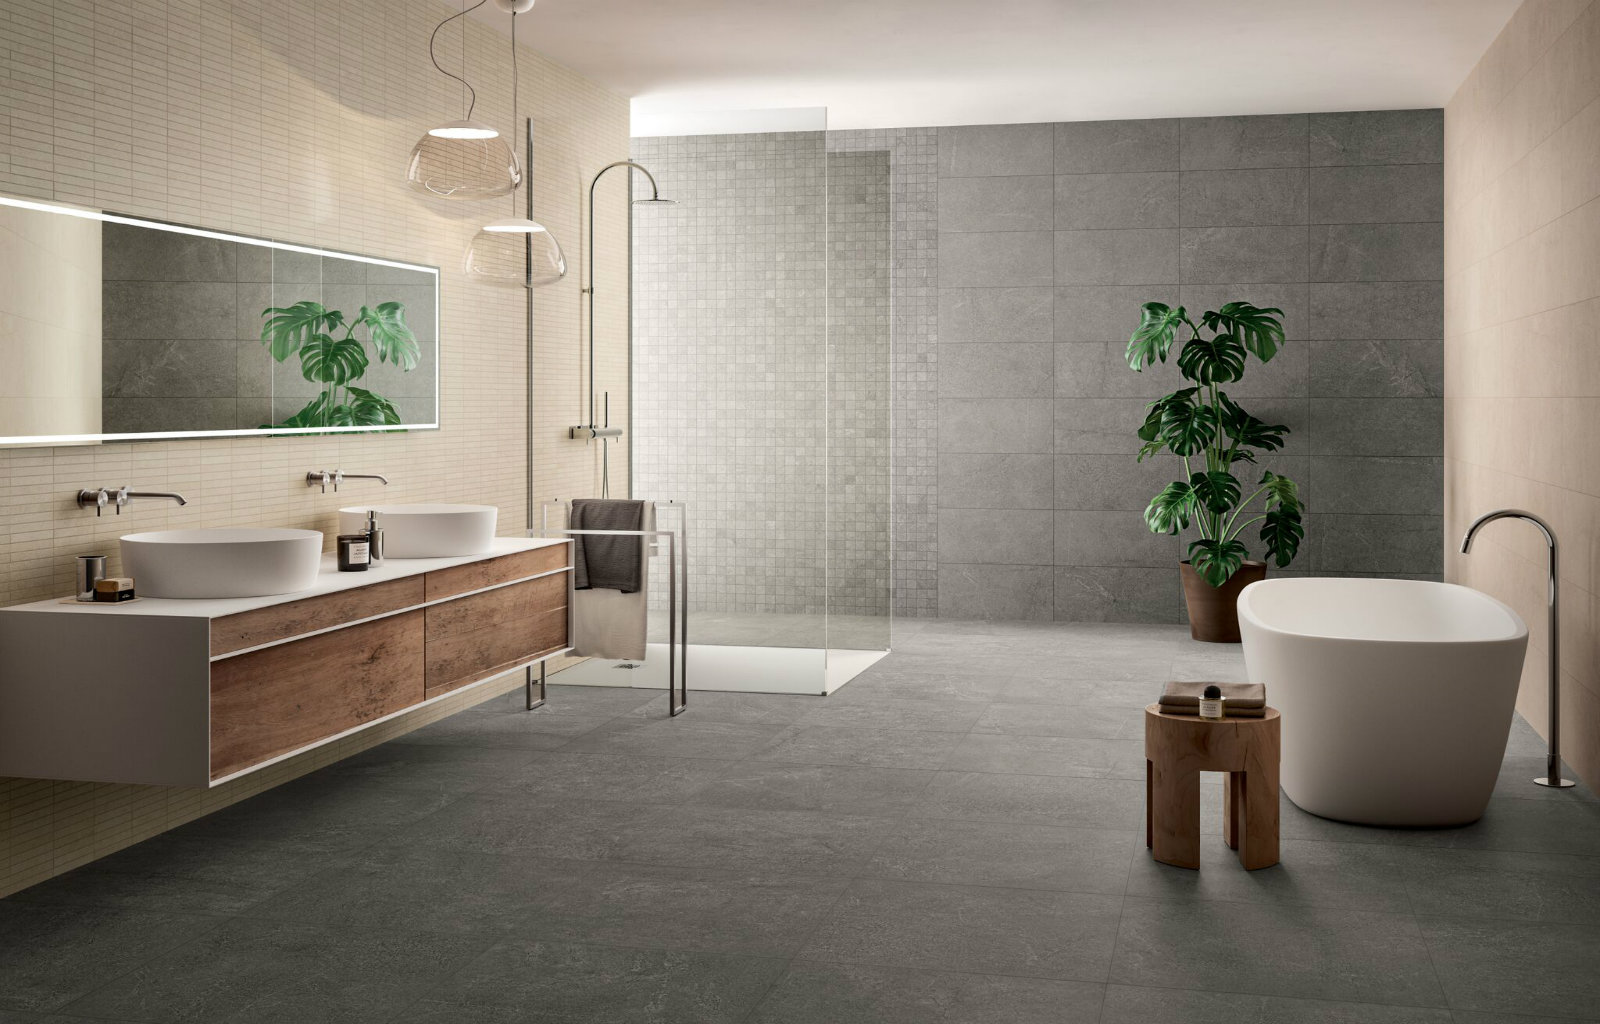 Floor and wall bathroom tiles